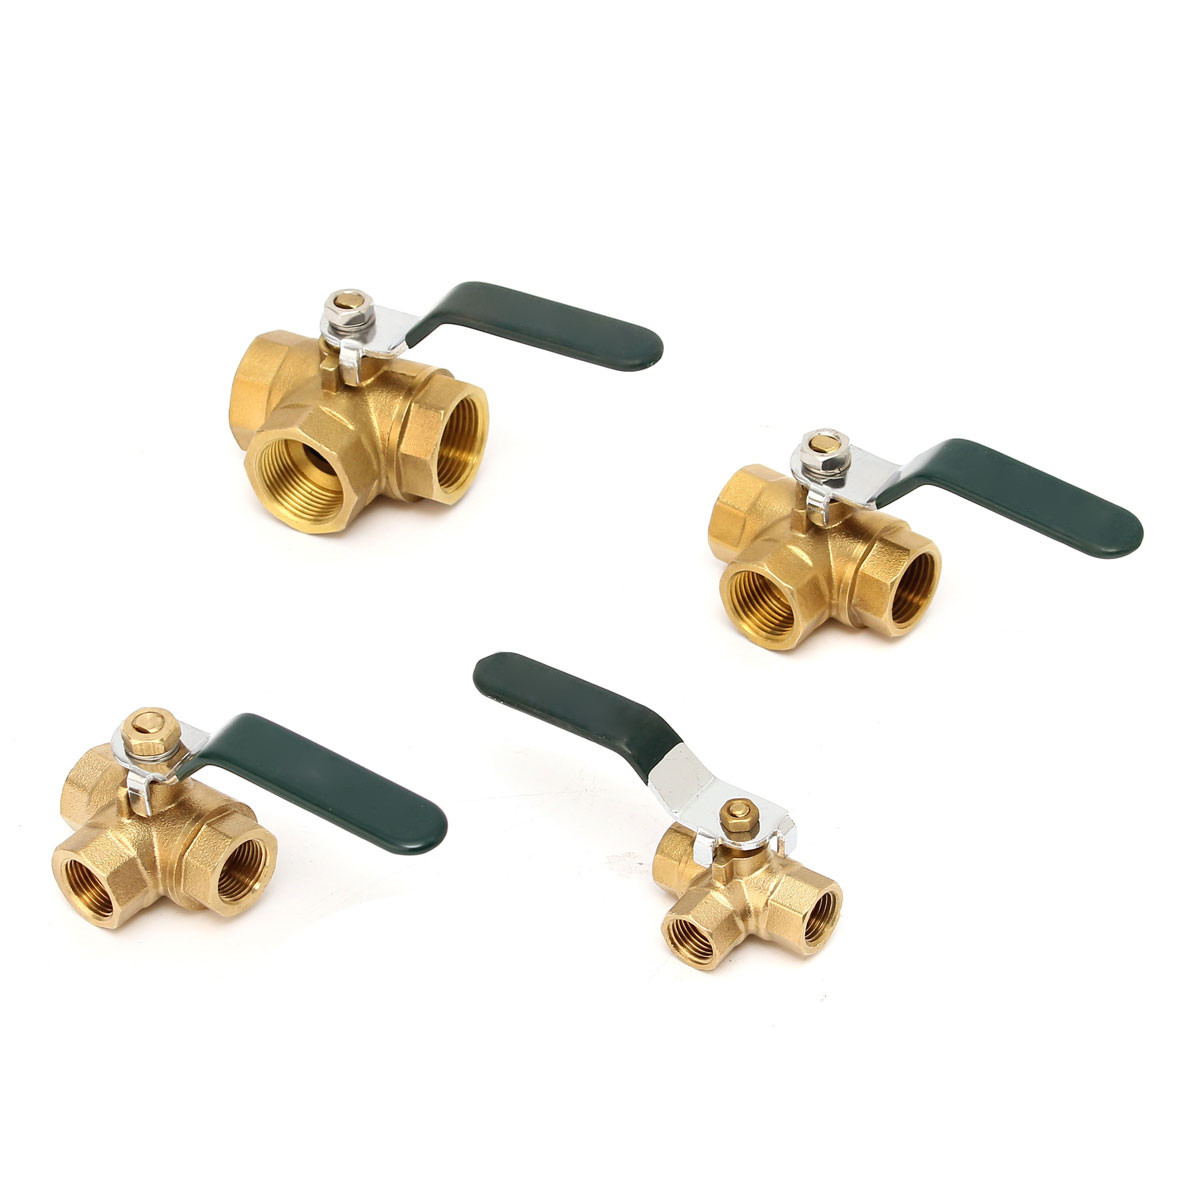 1/4 3/8 1/2 3/4Brass Ball Valve Fixed 3 Way Full L Type Port Thread Connector Faucet Value Water Filter Adapter Handle